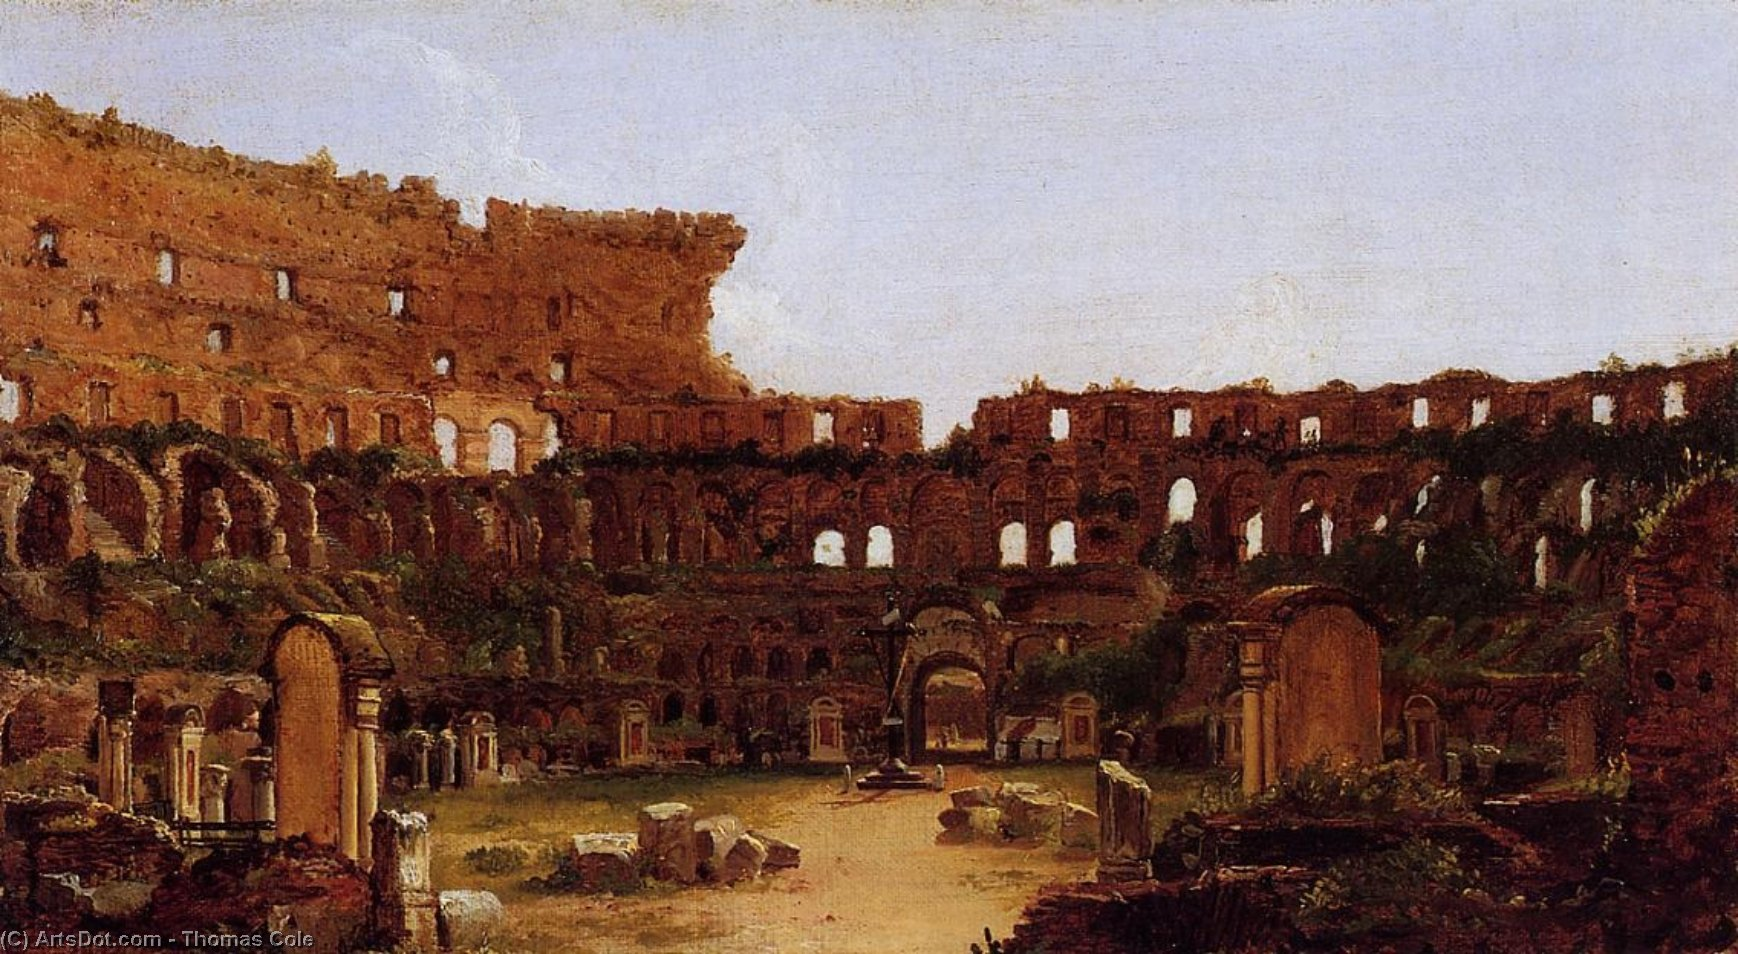 Interior of the Colosseum, Rome, Oil On Canvas by Thomas Cole (1801-1848, England)